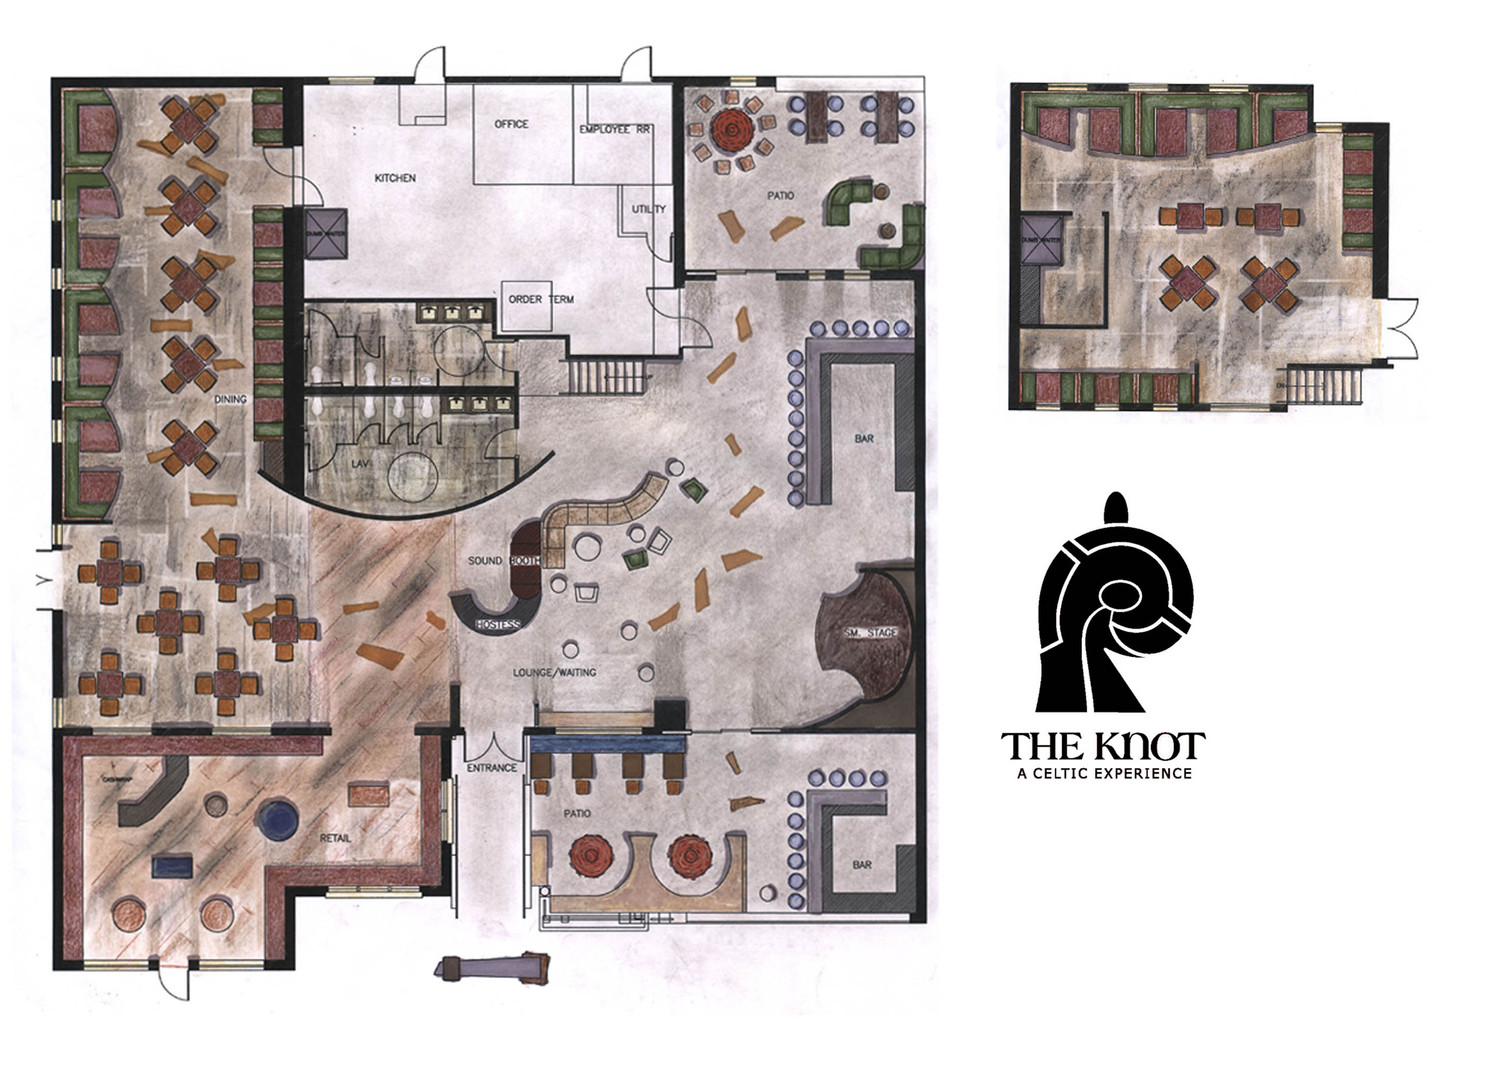 The Knot //Restaurant & Gathering Place